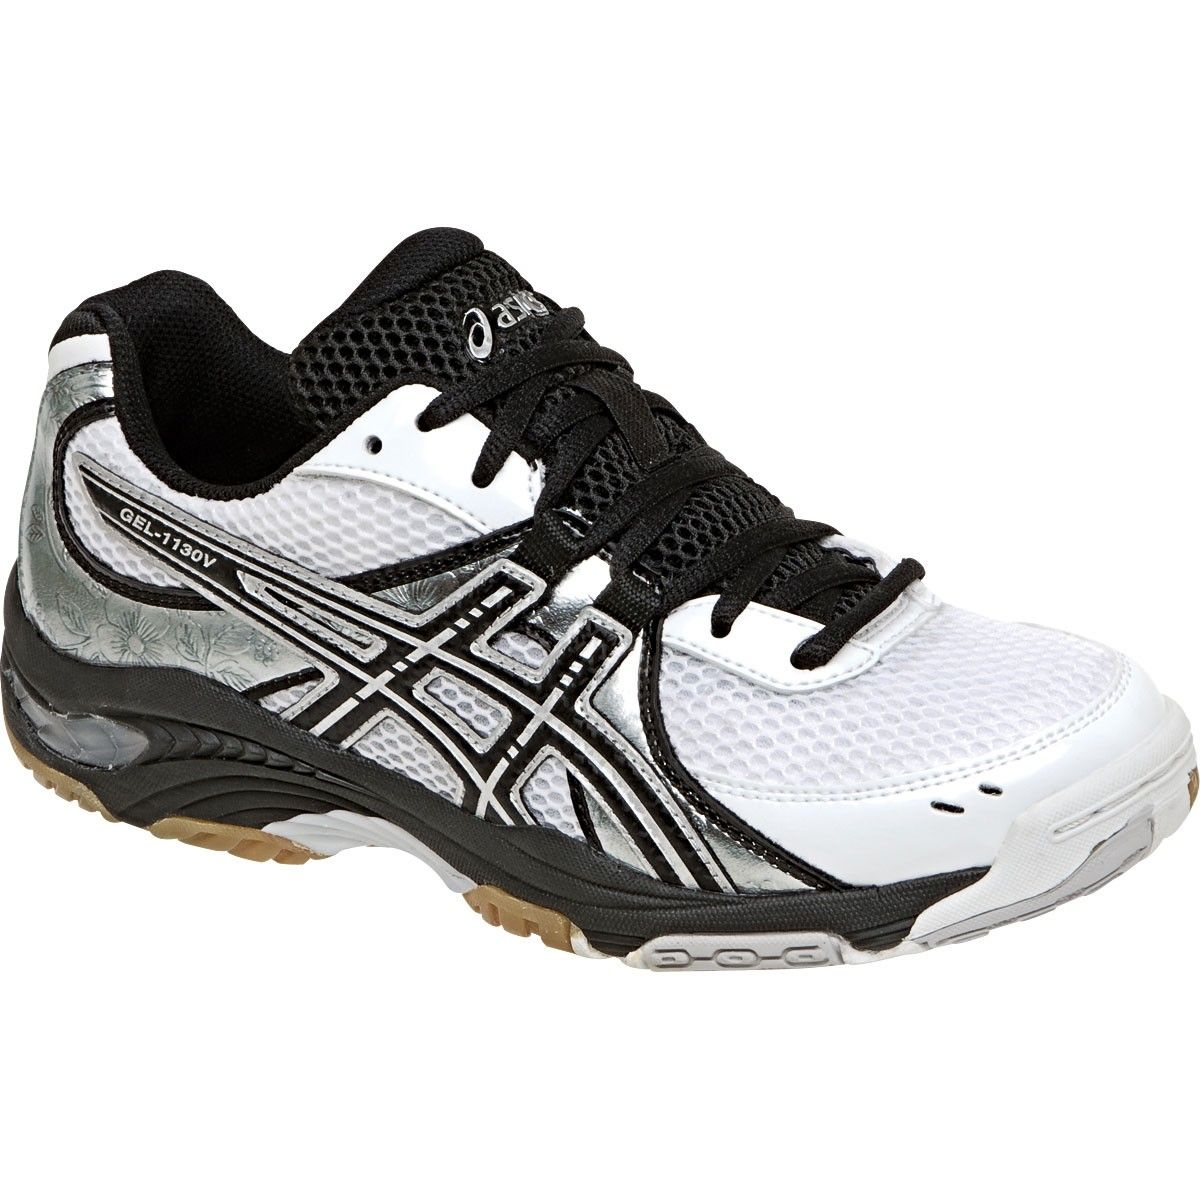 Asics Gel 1130v Women S Volleyball Shoes Volleyball Shoes Asics Volleyball Shoes Asics